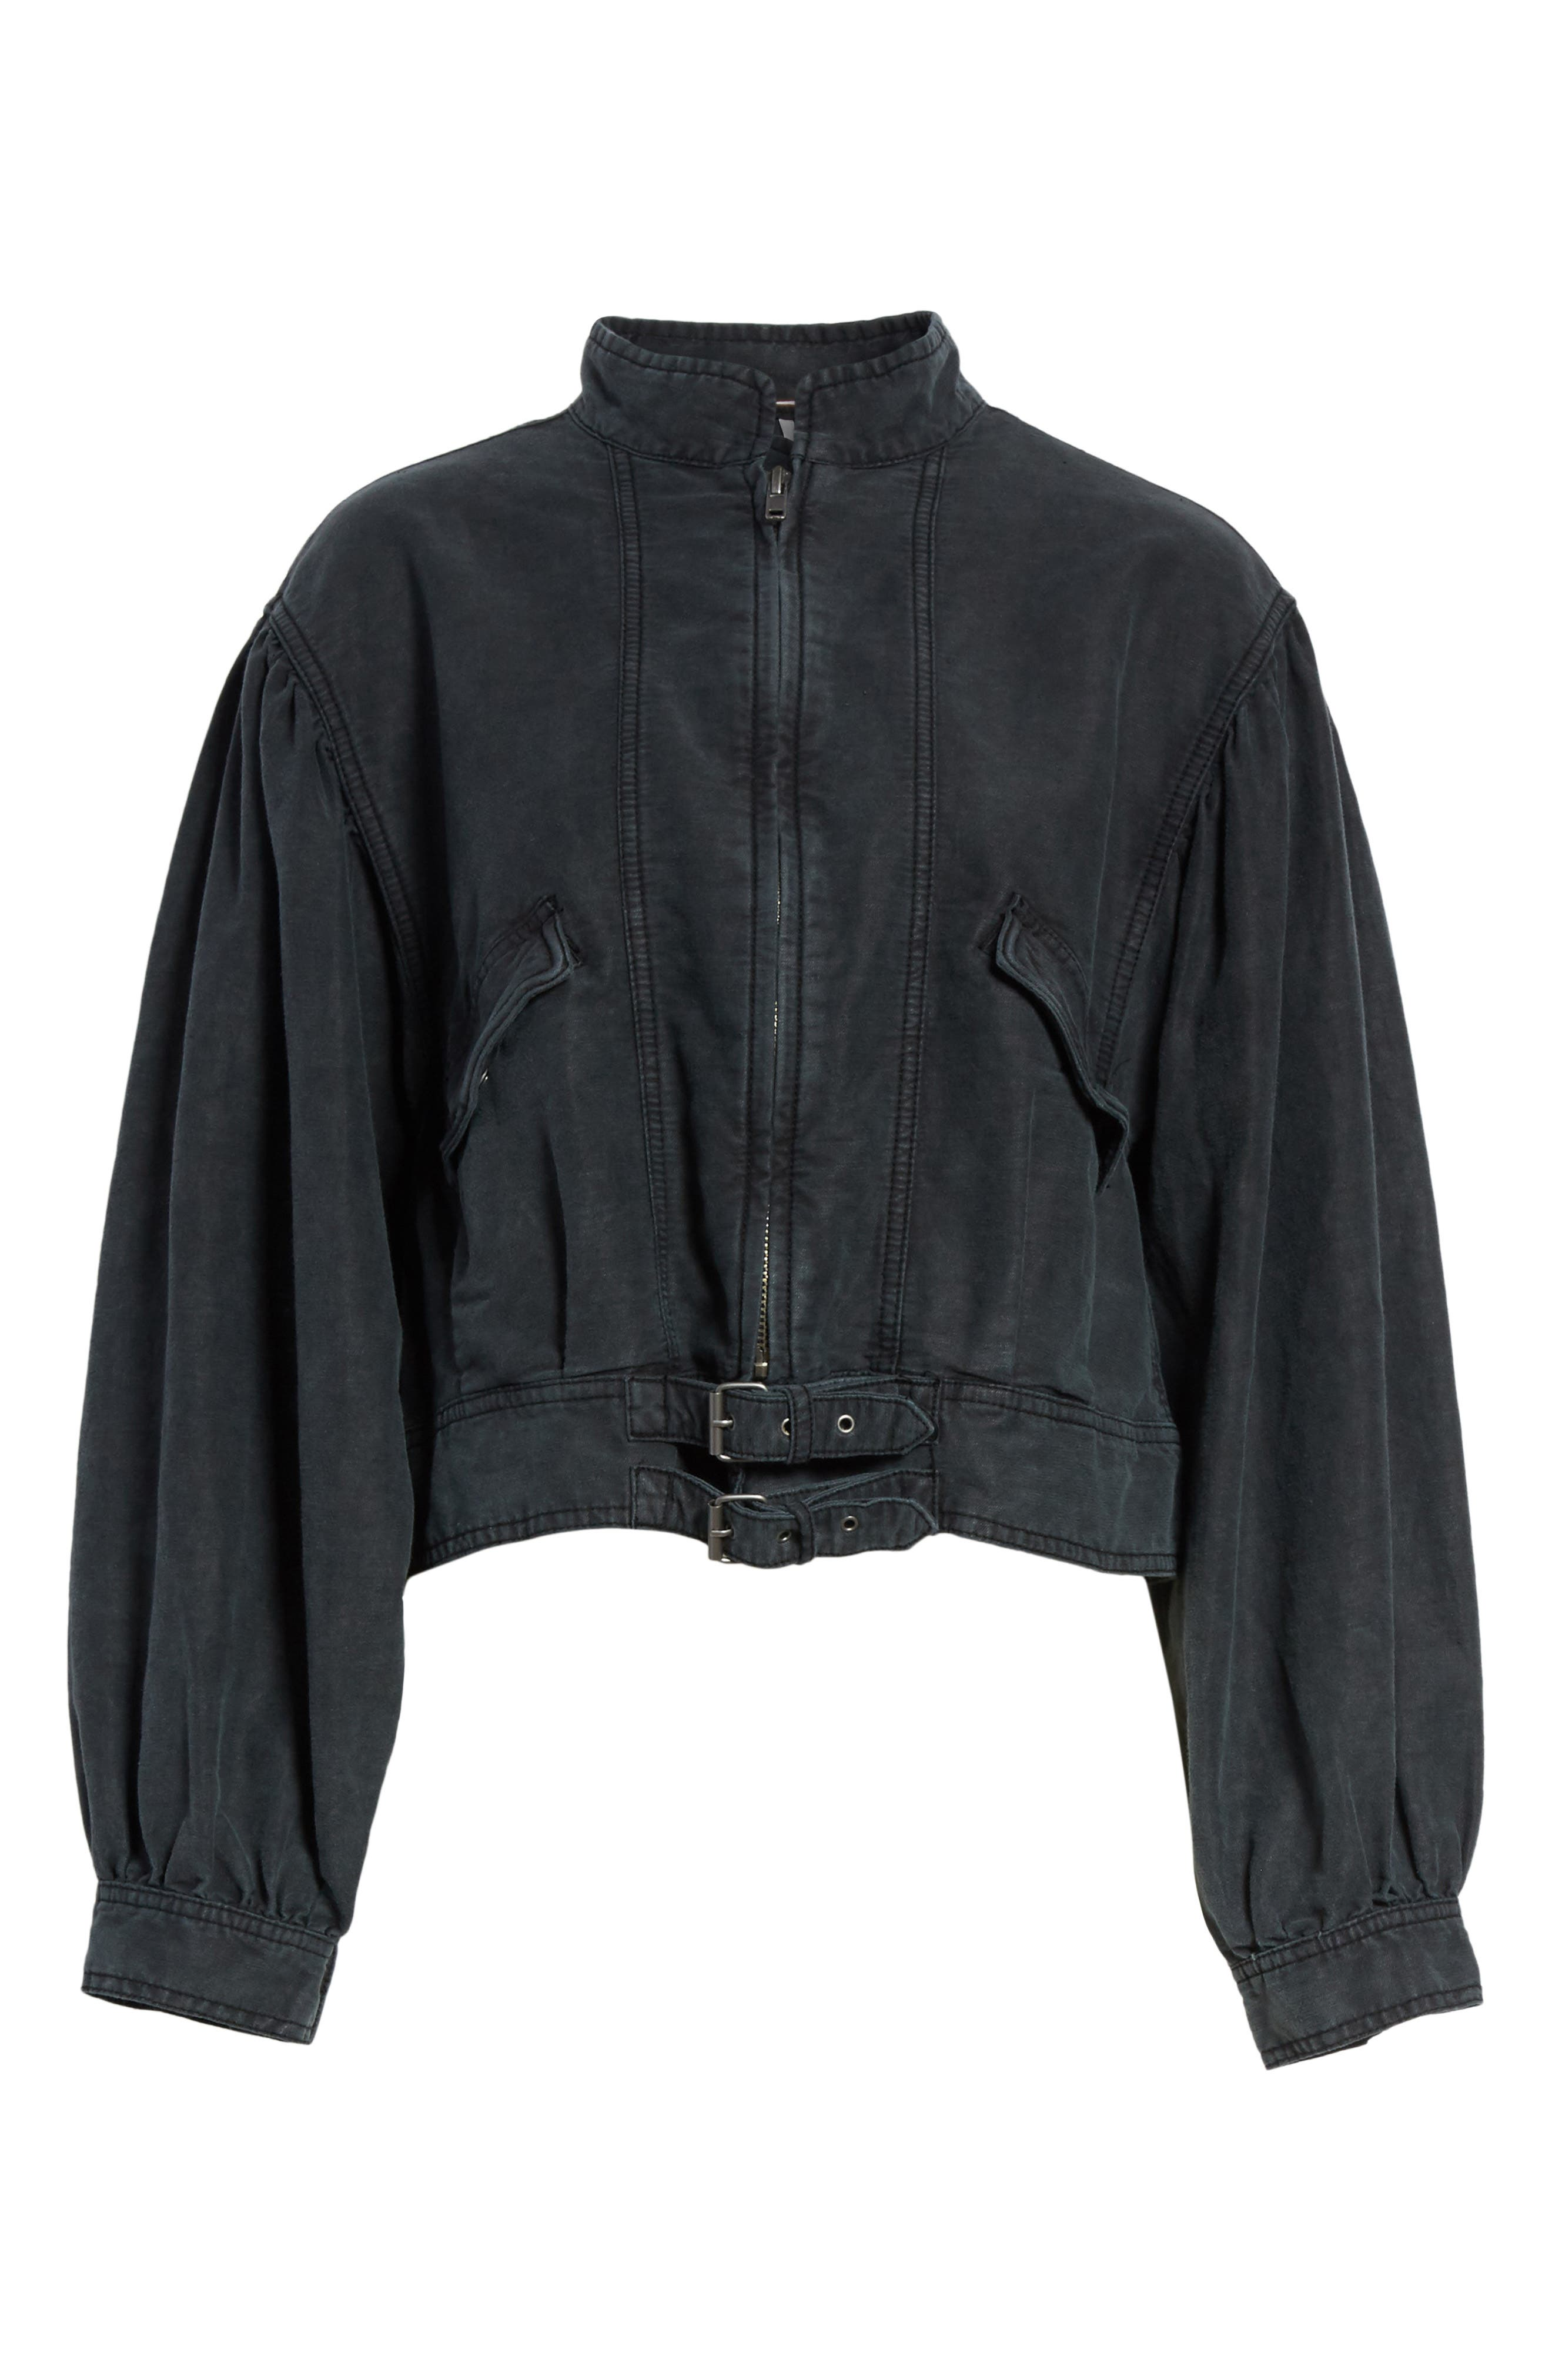 Poet Jacket,                             Alternate thumbnail 6, color,                             Black